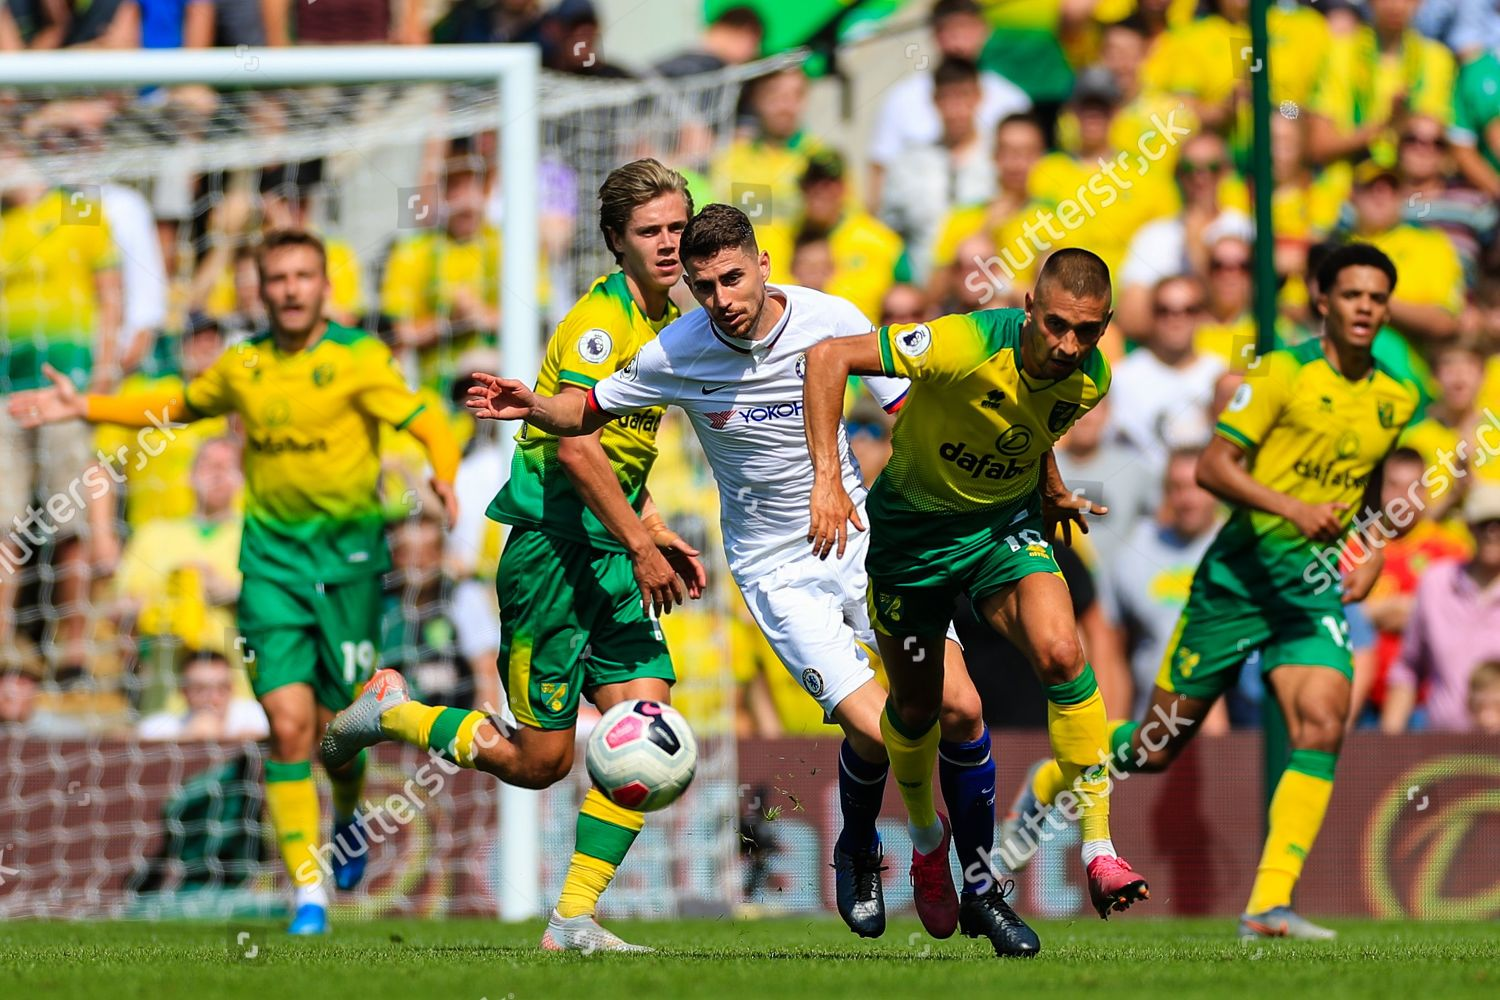 24th August 2019 Carrow Road Norwich England Editorial Stock